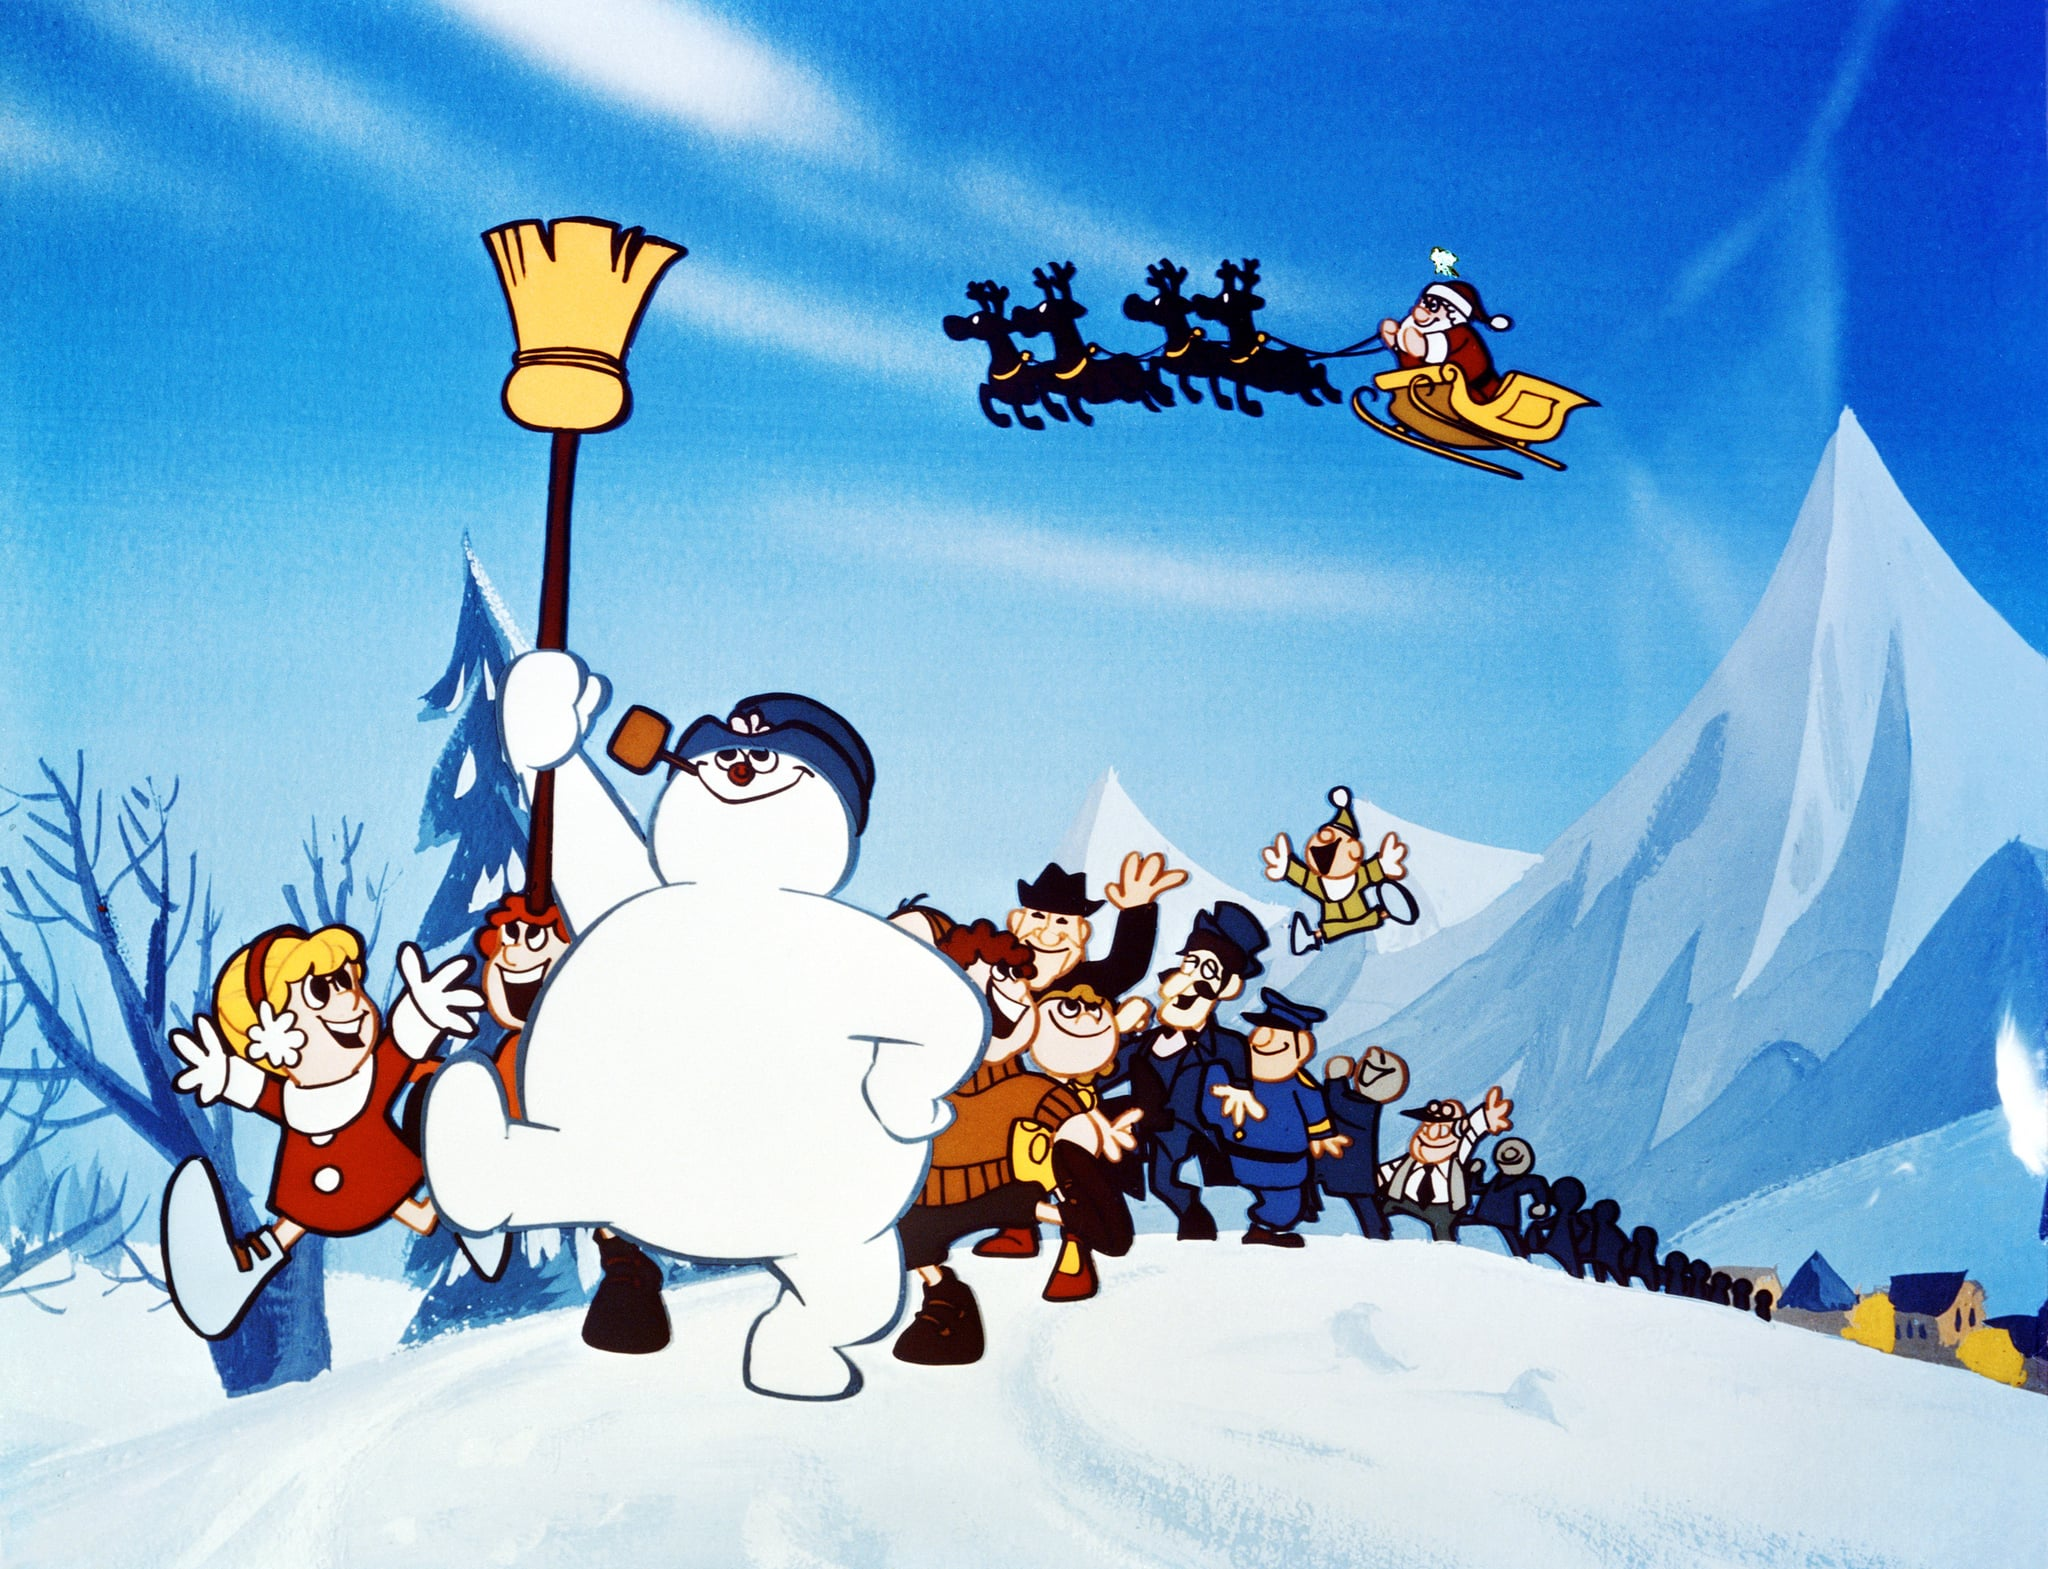 the 1969 animated frosty the snowman film will go down in history as one of the best holiday films of all time but it will also go down in history as one